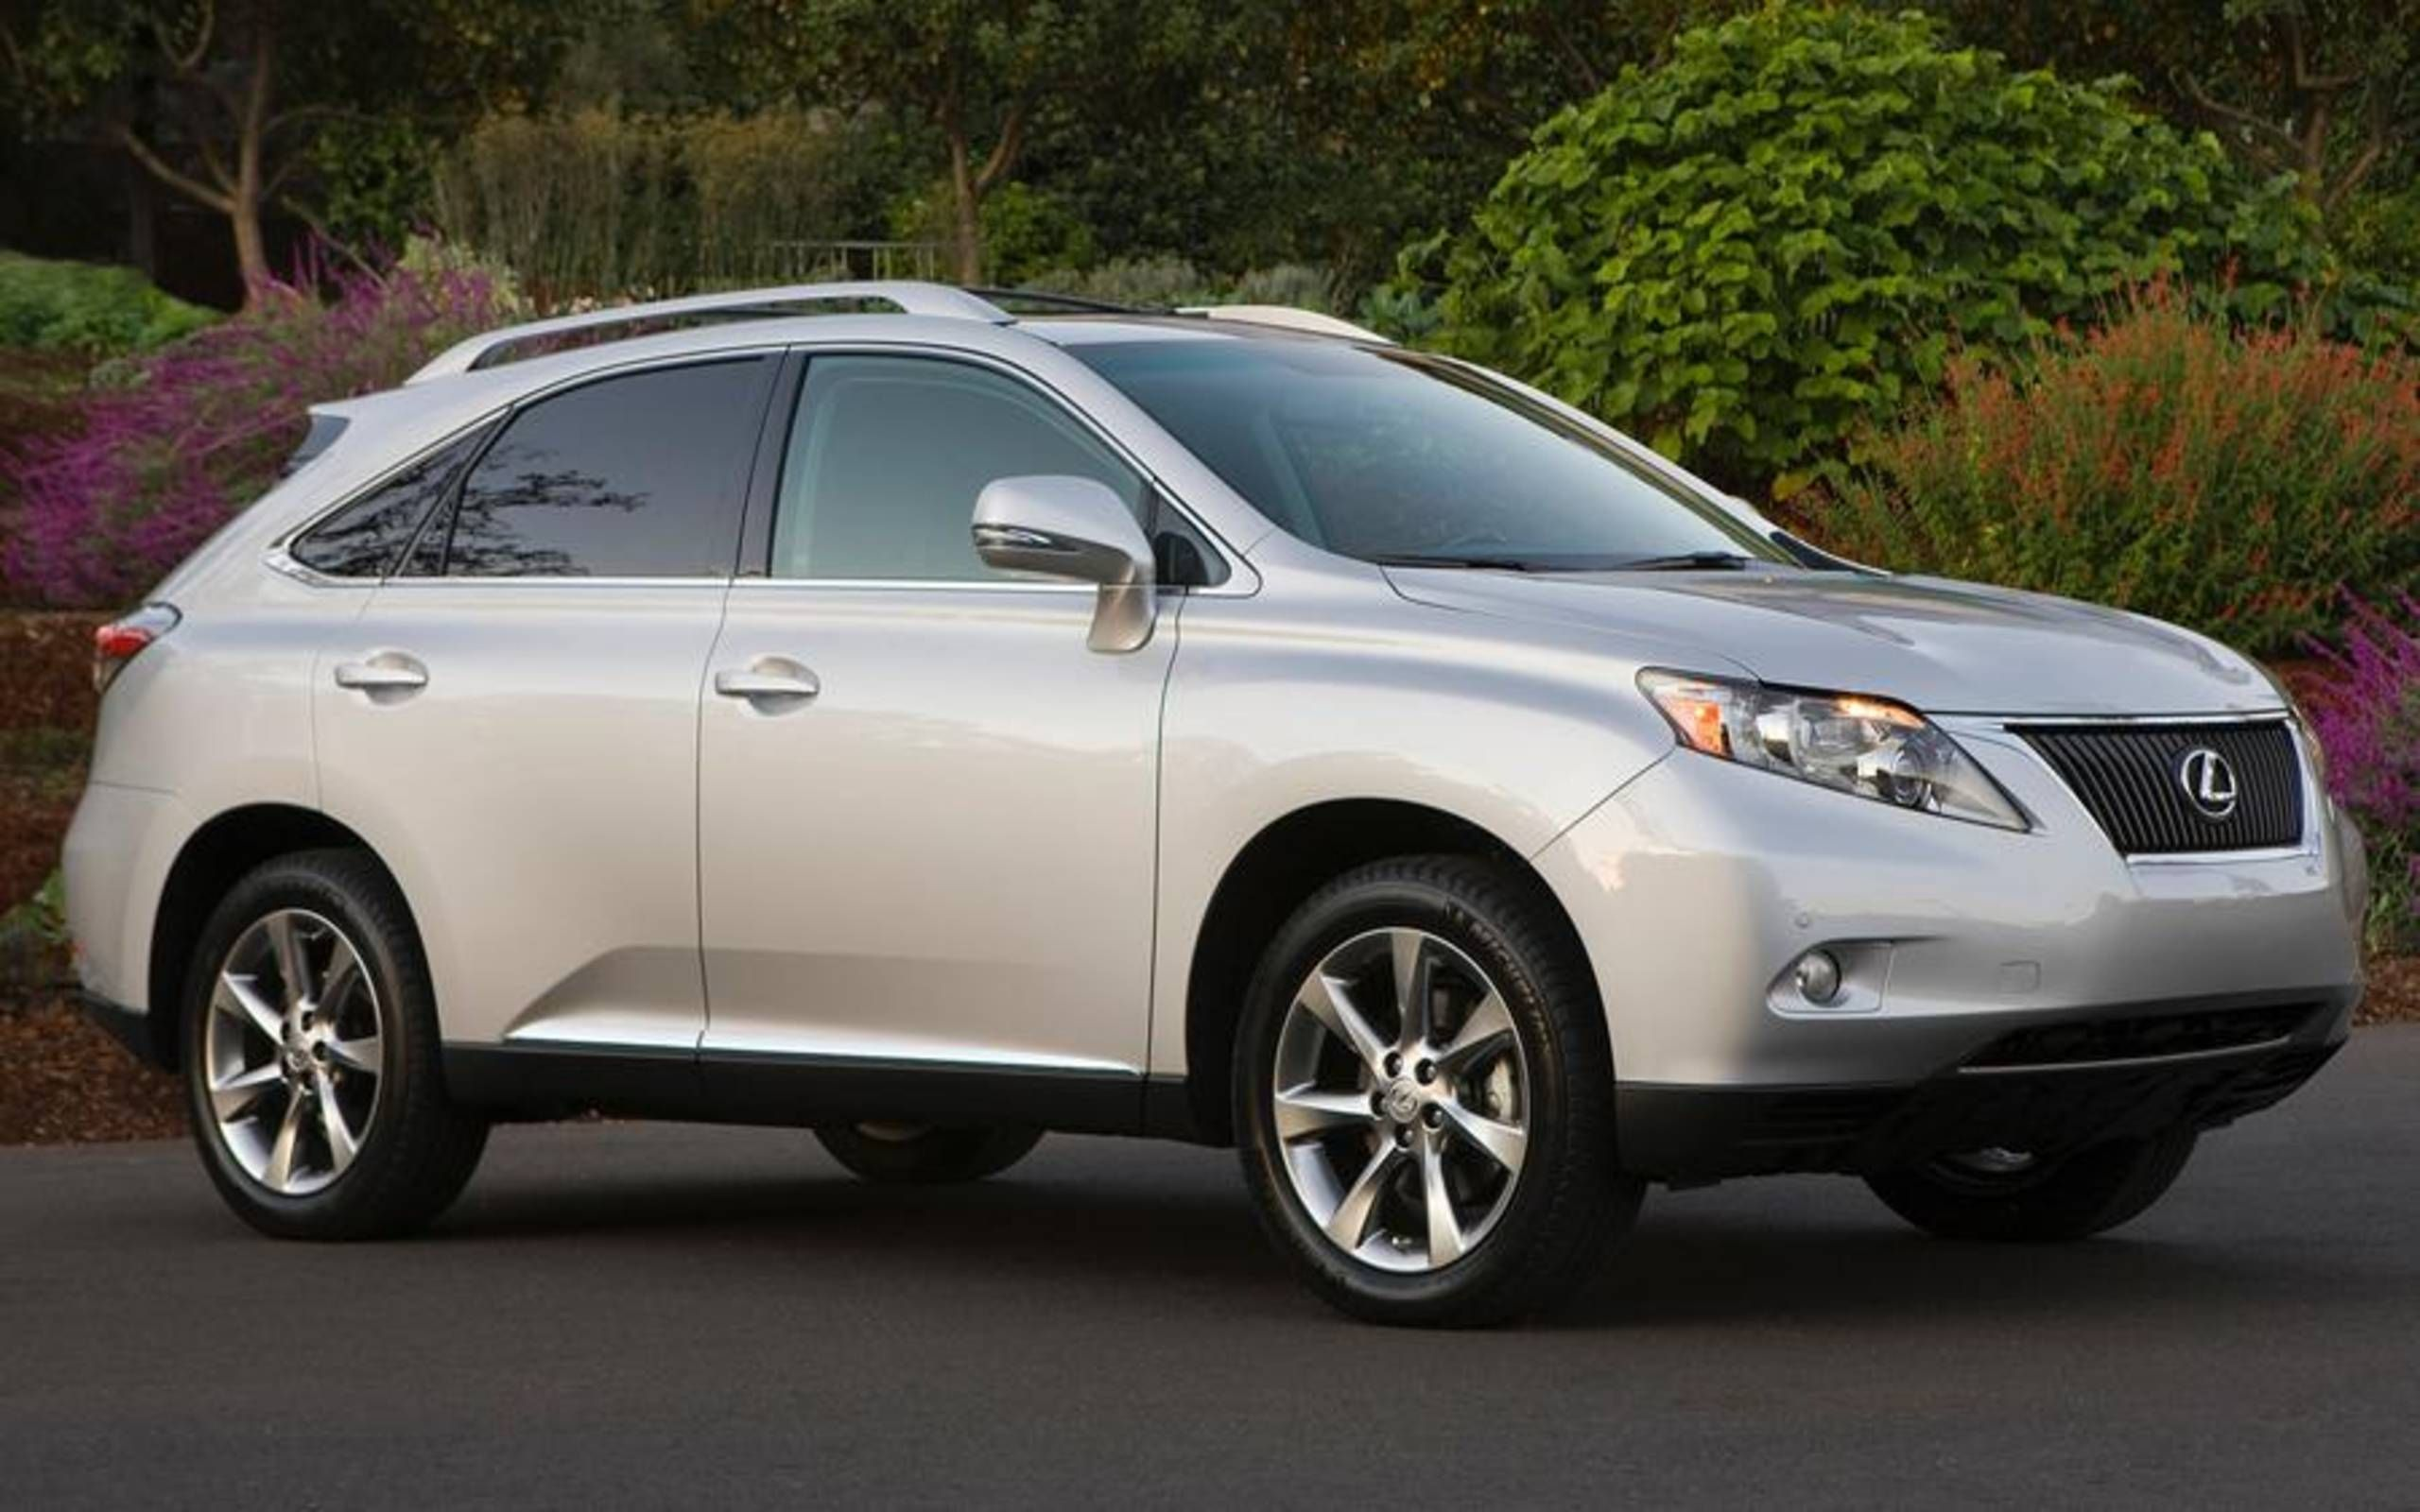 2011 Lexus Rx 350 Review Notes The Leader Of The Midsize Luxury Suv Class Has Room To Improve